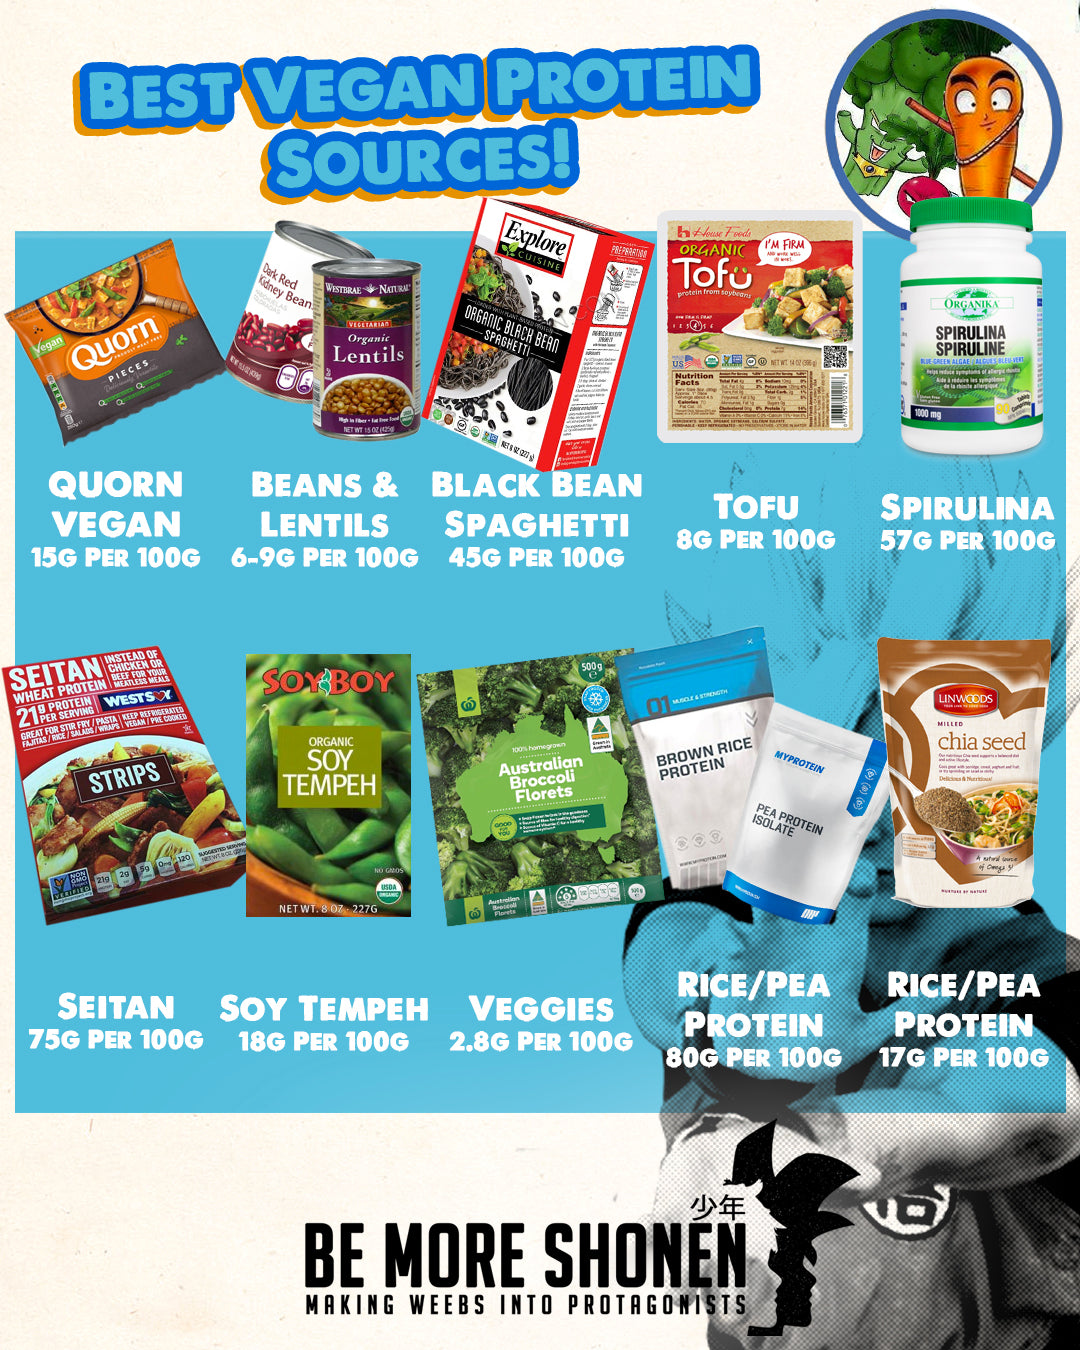 Becoming a vegan Saiyan: The best protein sources for vegetarians and vegan muscle building